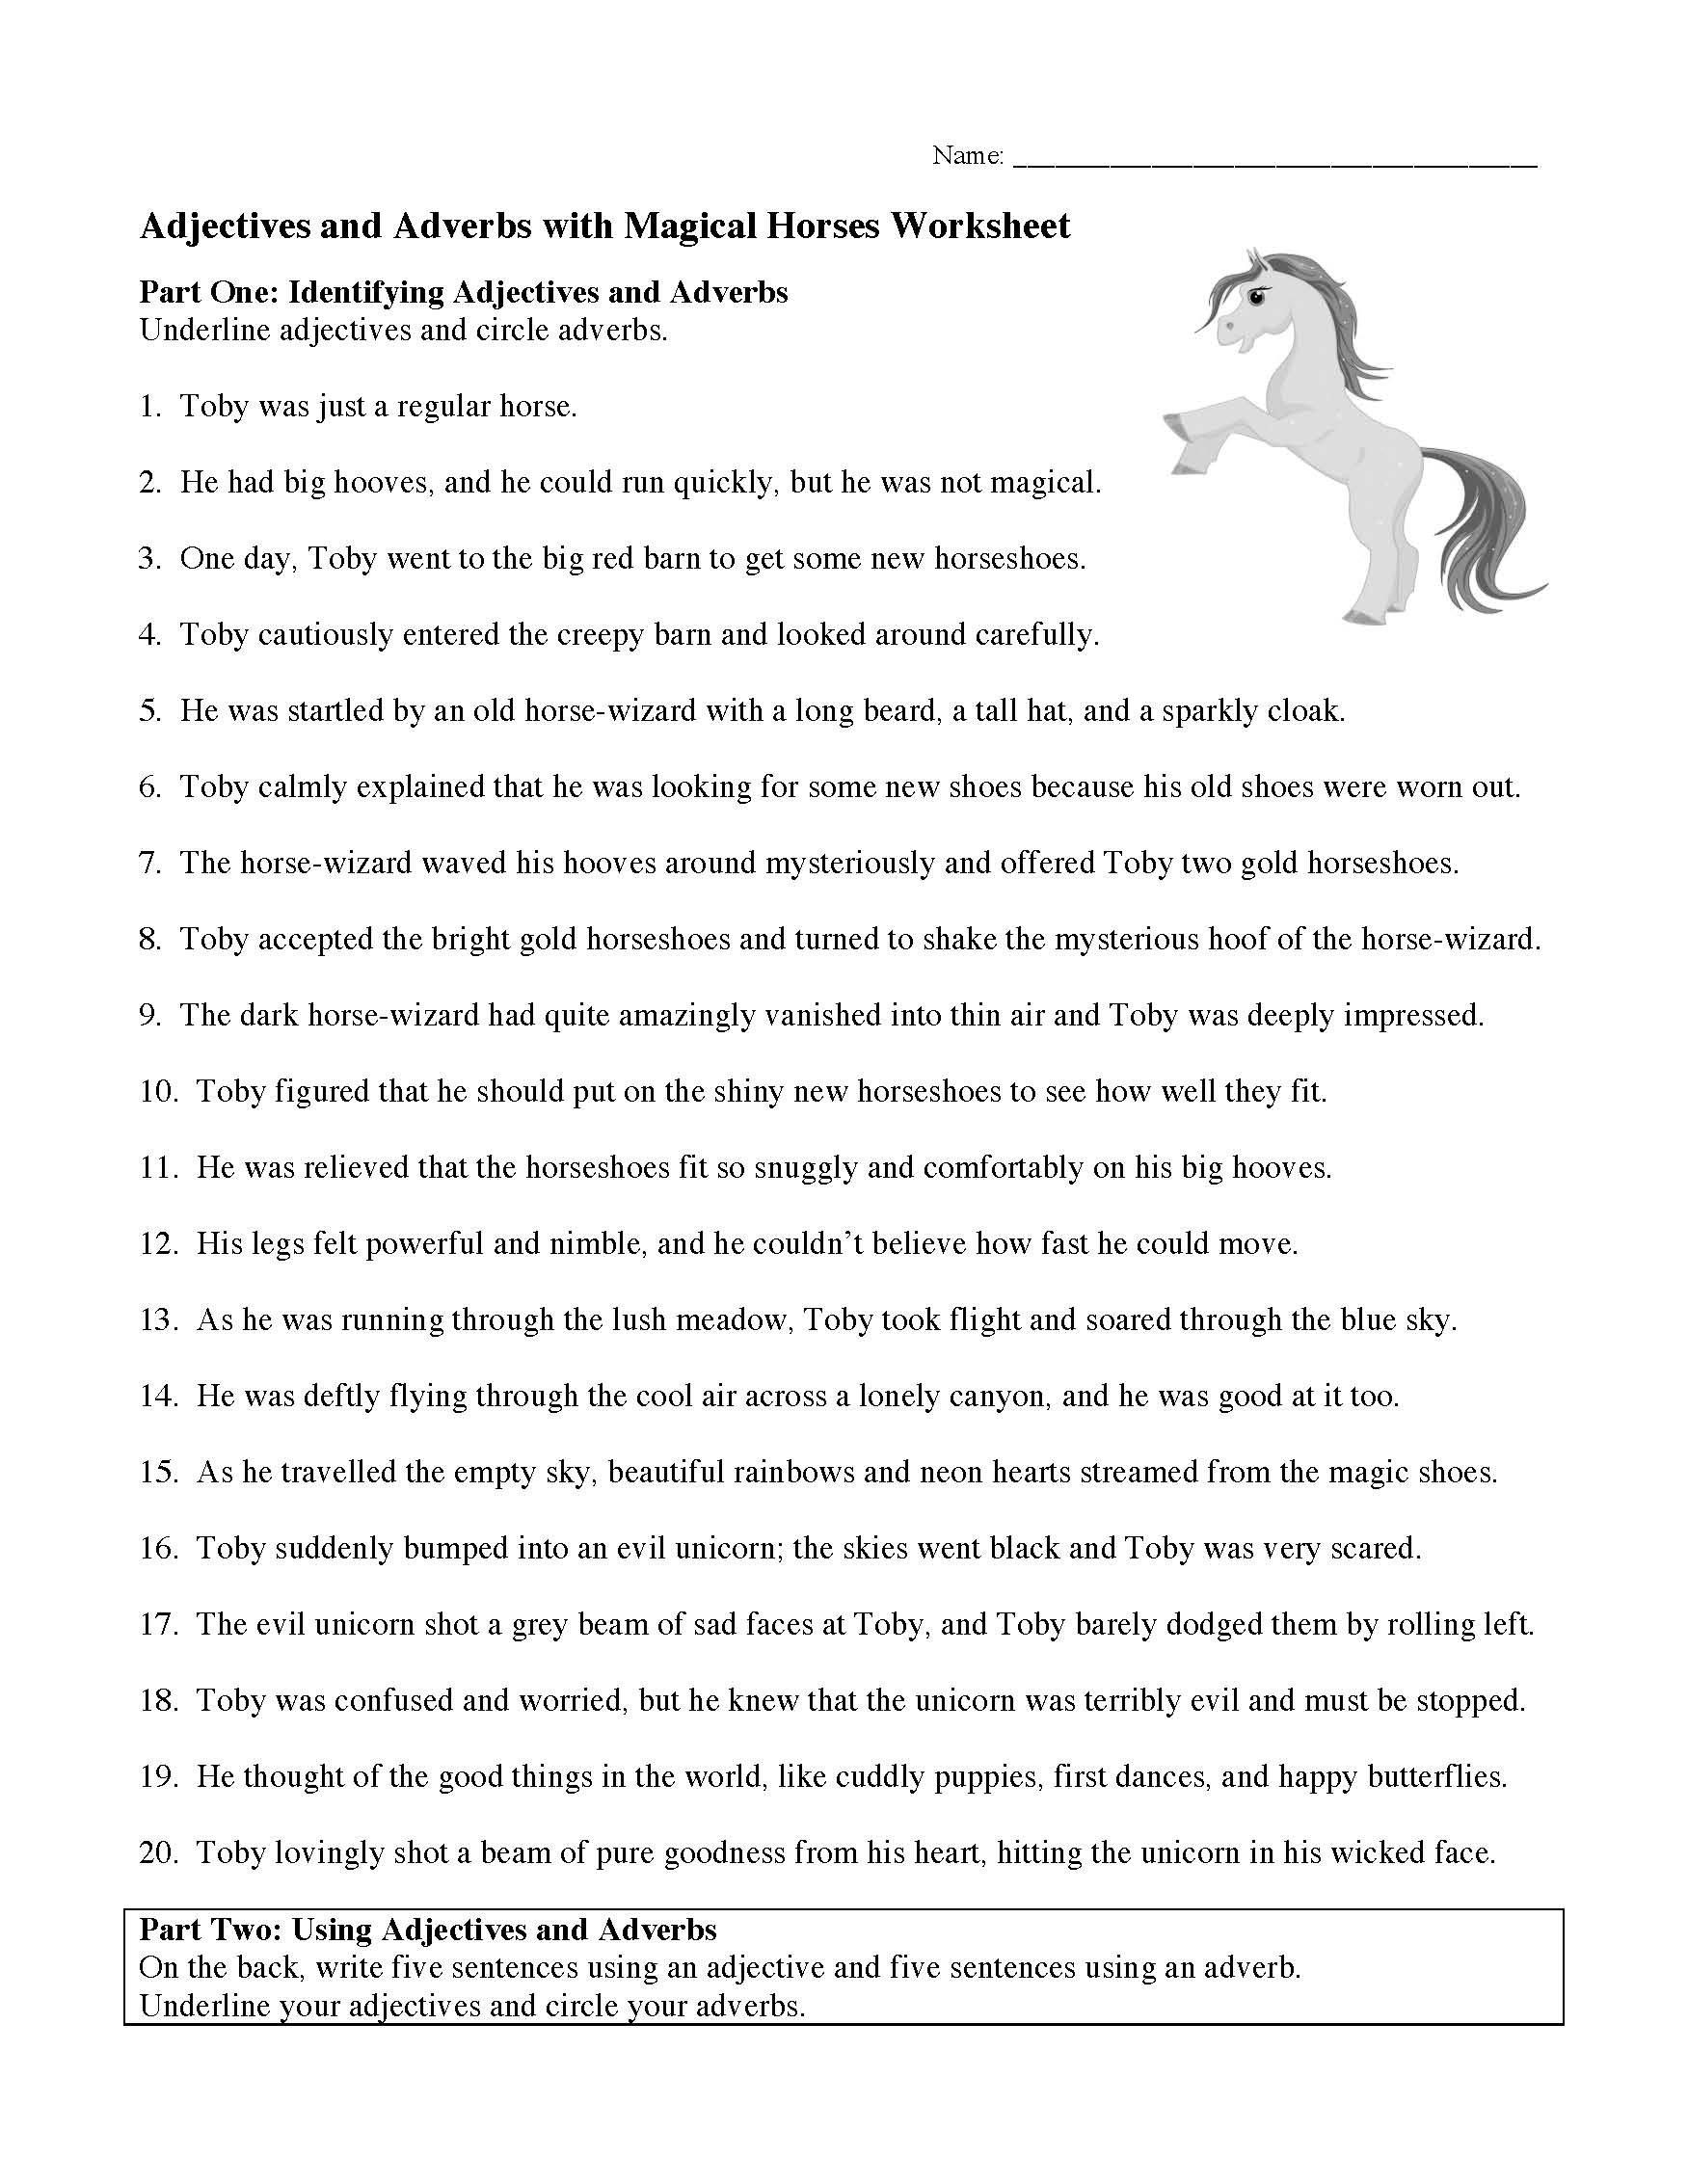 Adjectives And Adverbs With Magical Horses Worksheet